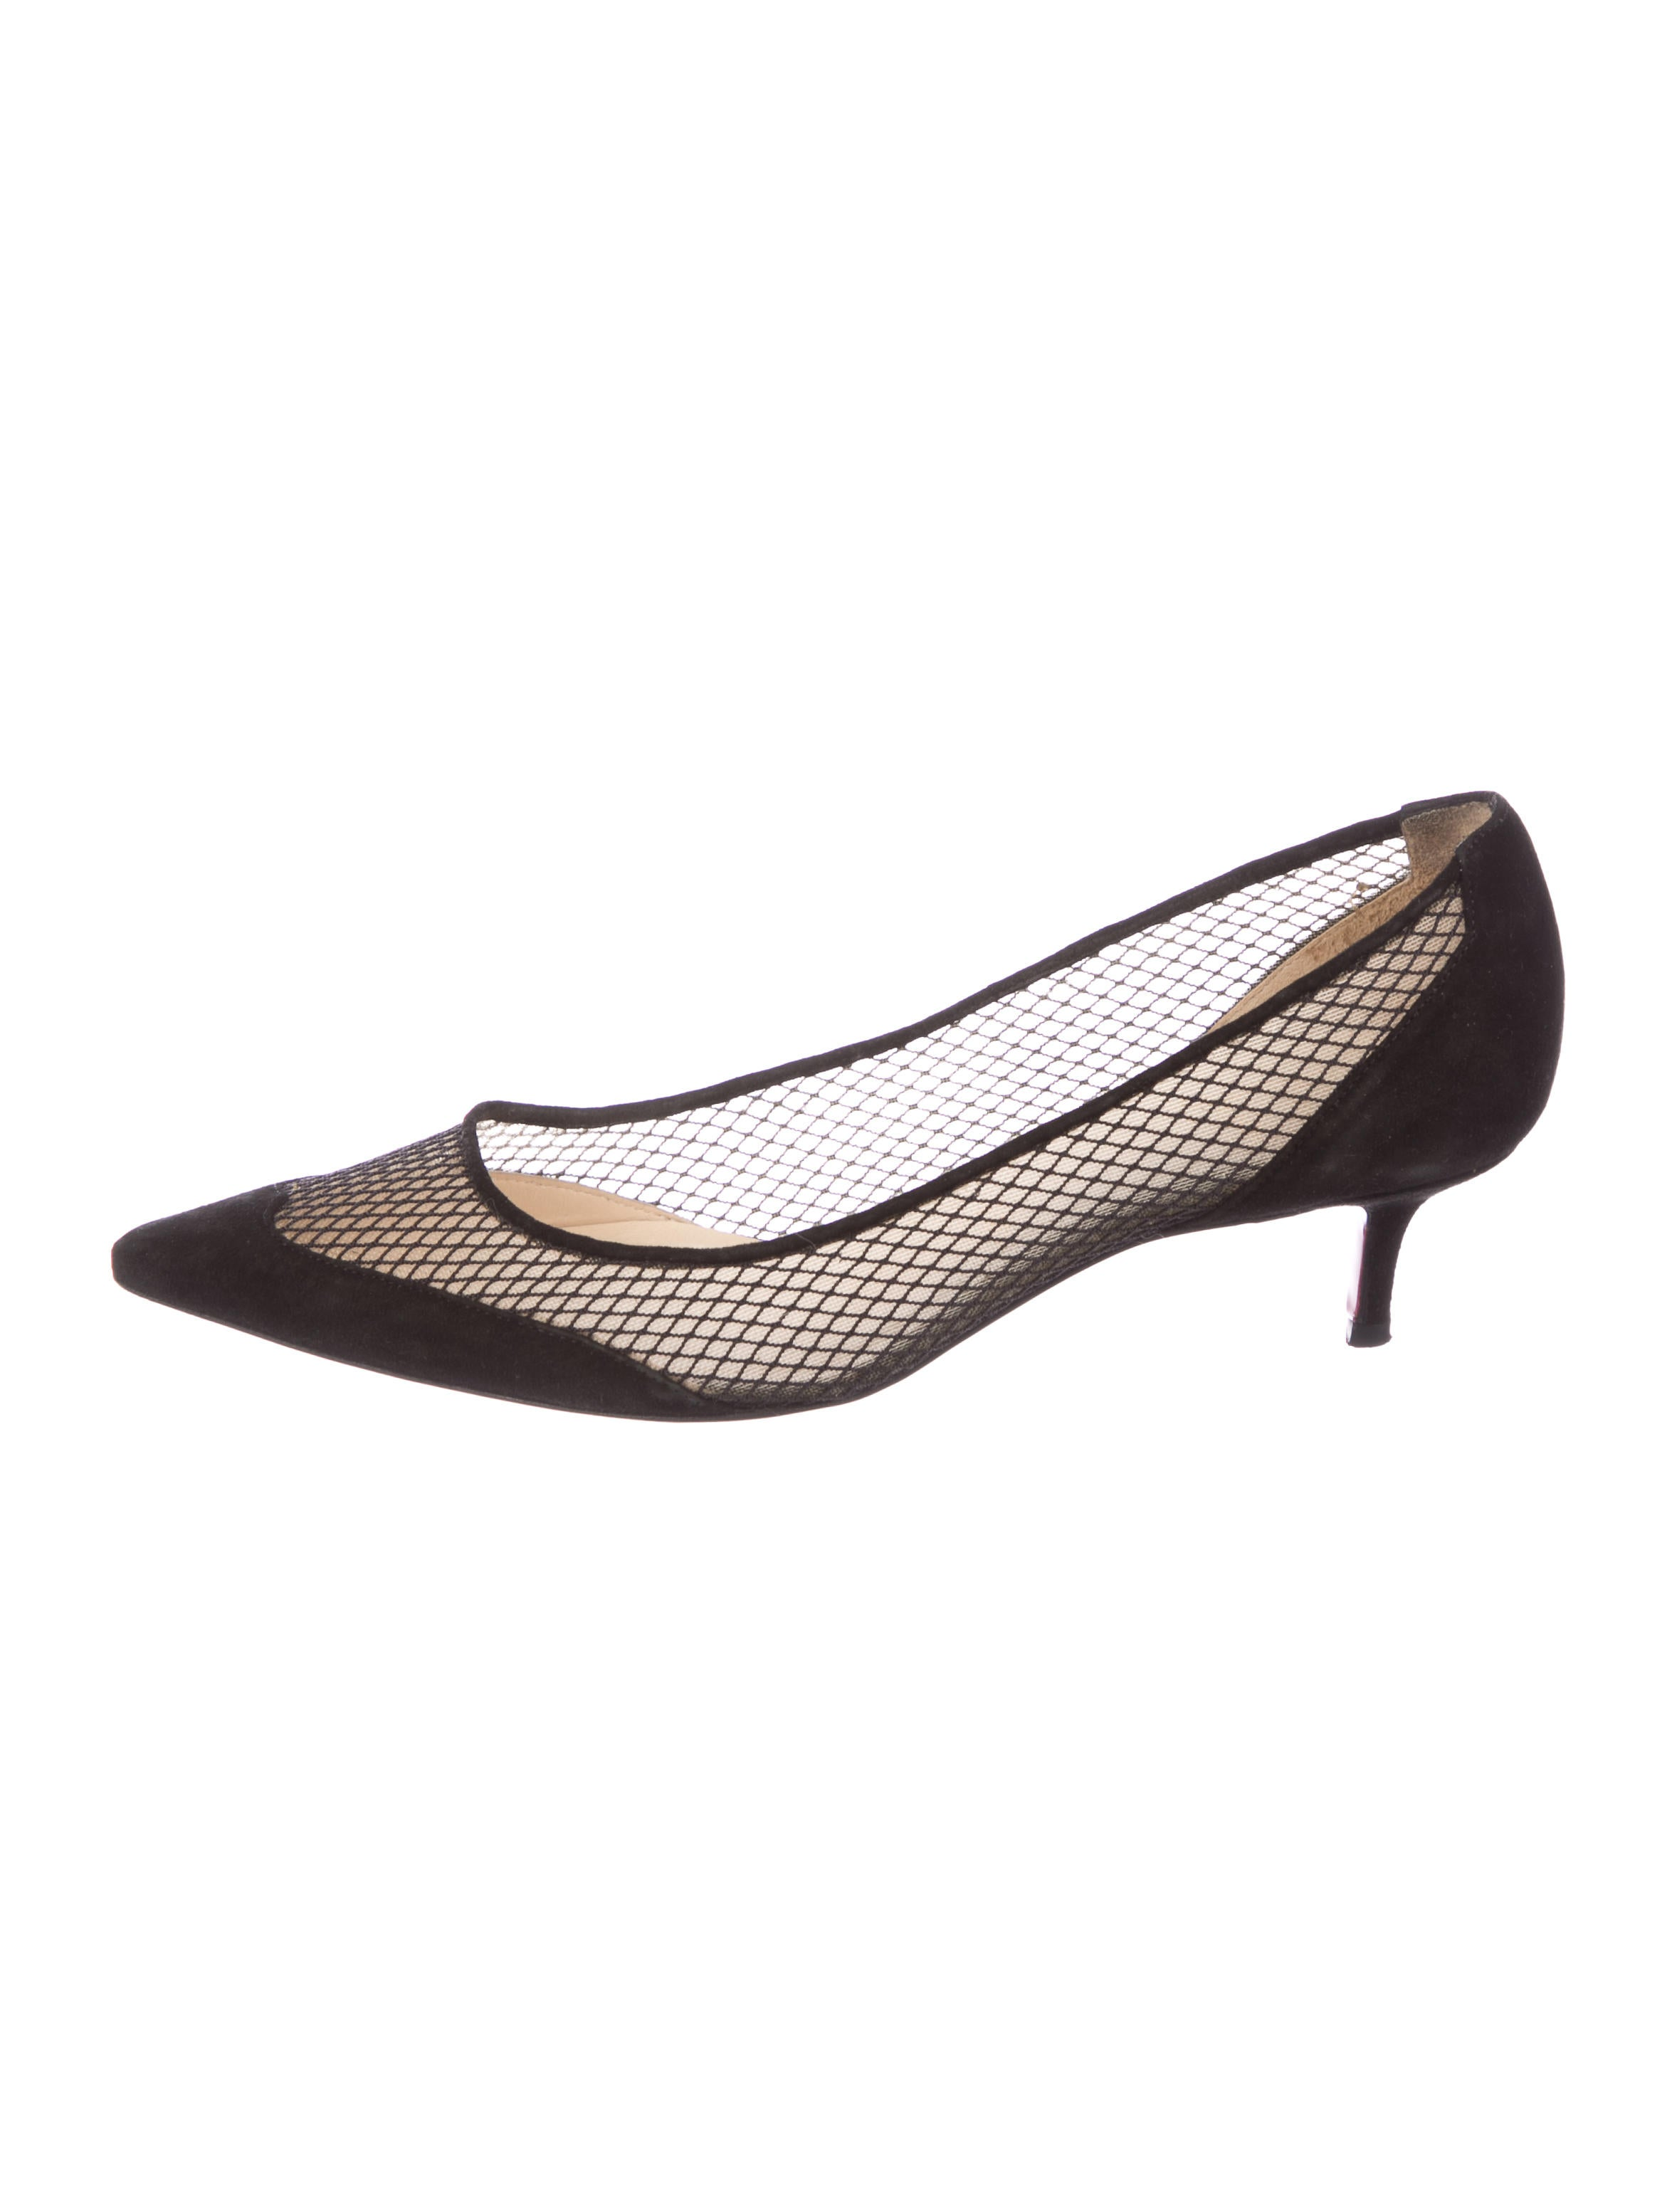 clearance choice discount from china Christian Louboutin Mireille 45 Mesh Pumps free shipping sale buy cheap lowest price cheap sale the cheapest BvBUNJ9U